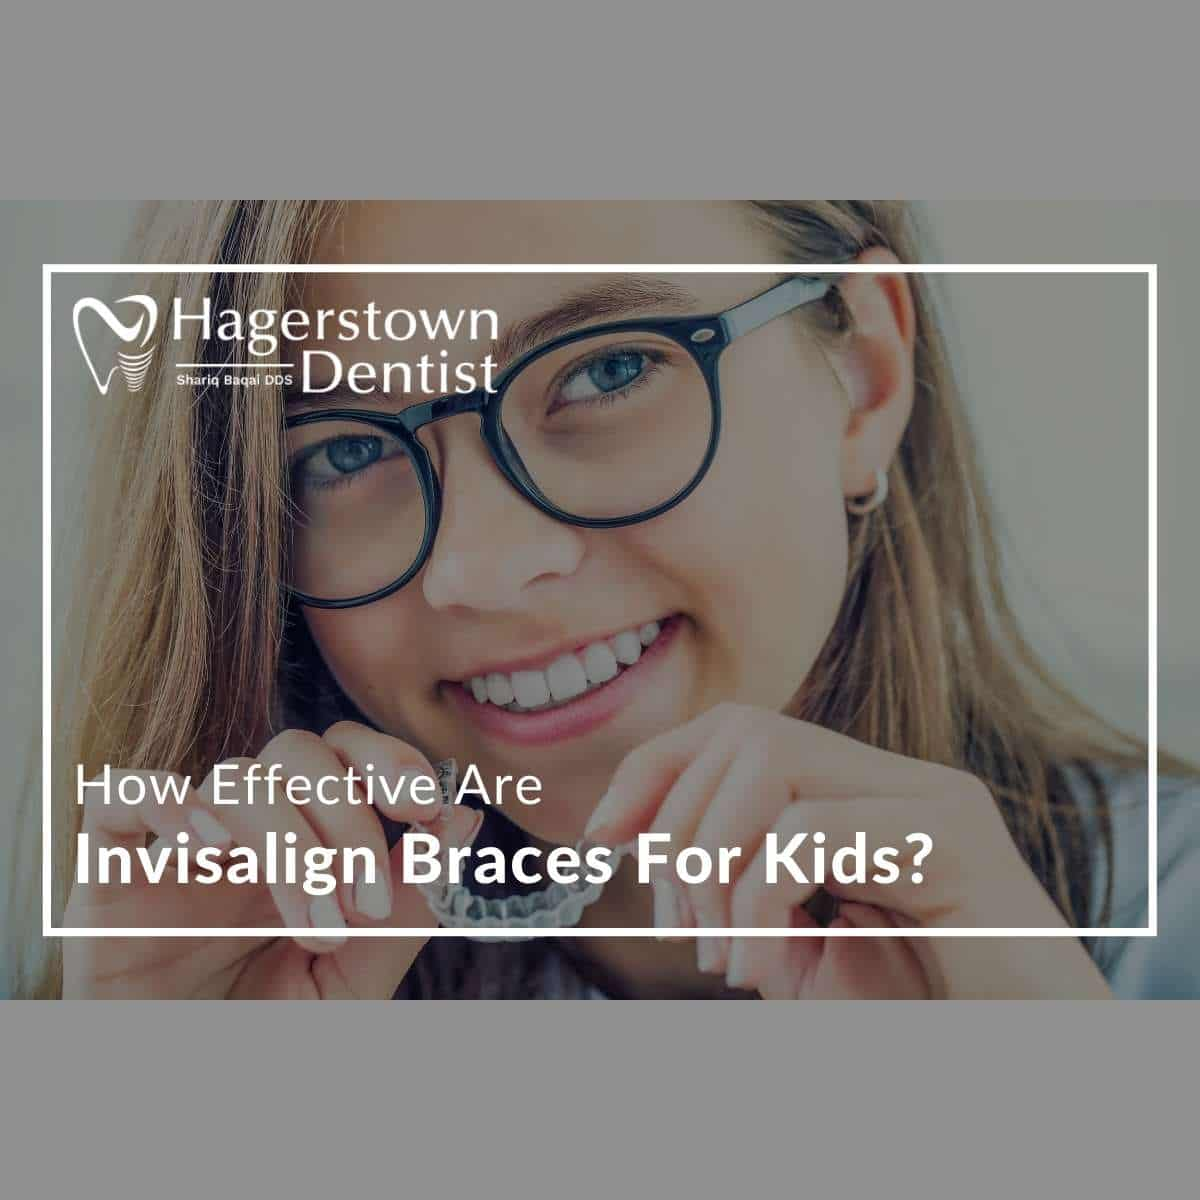 How Effective Are Invisalign Braces For Kids?